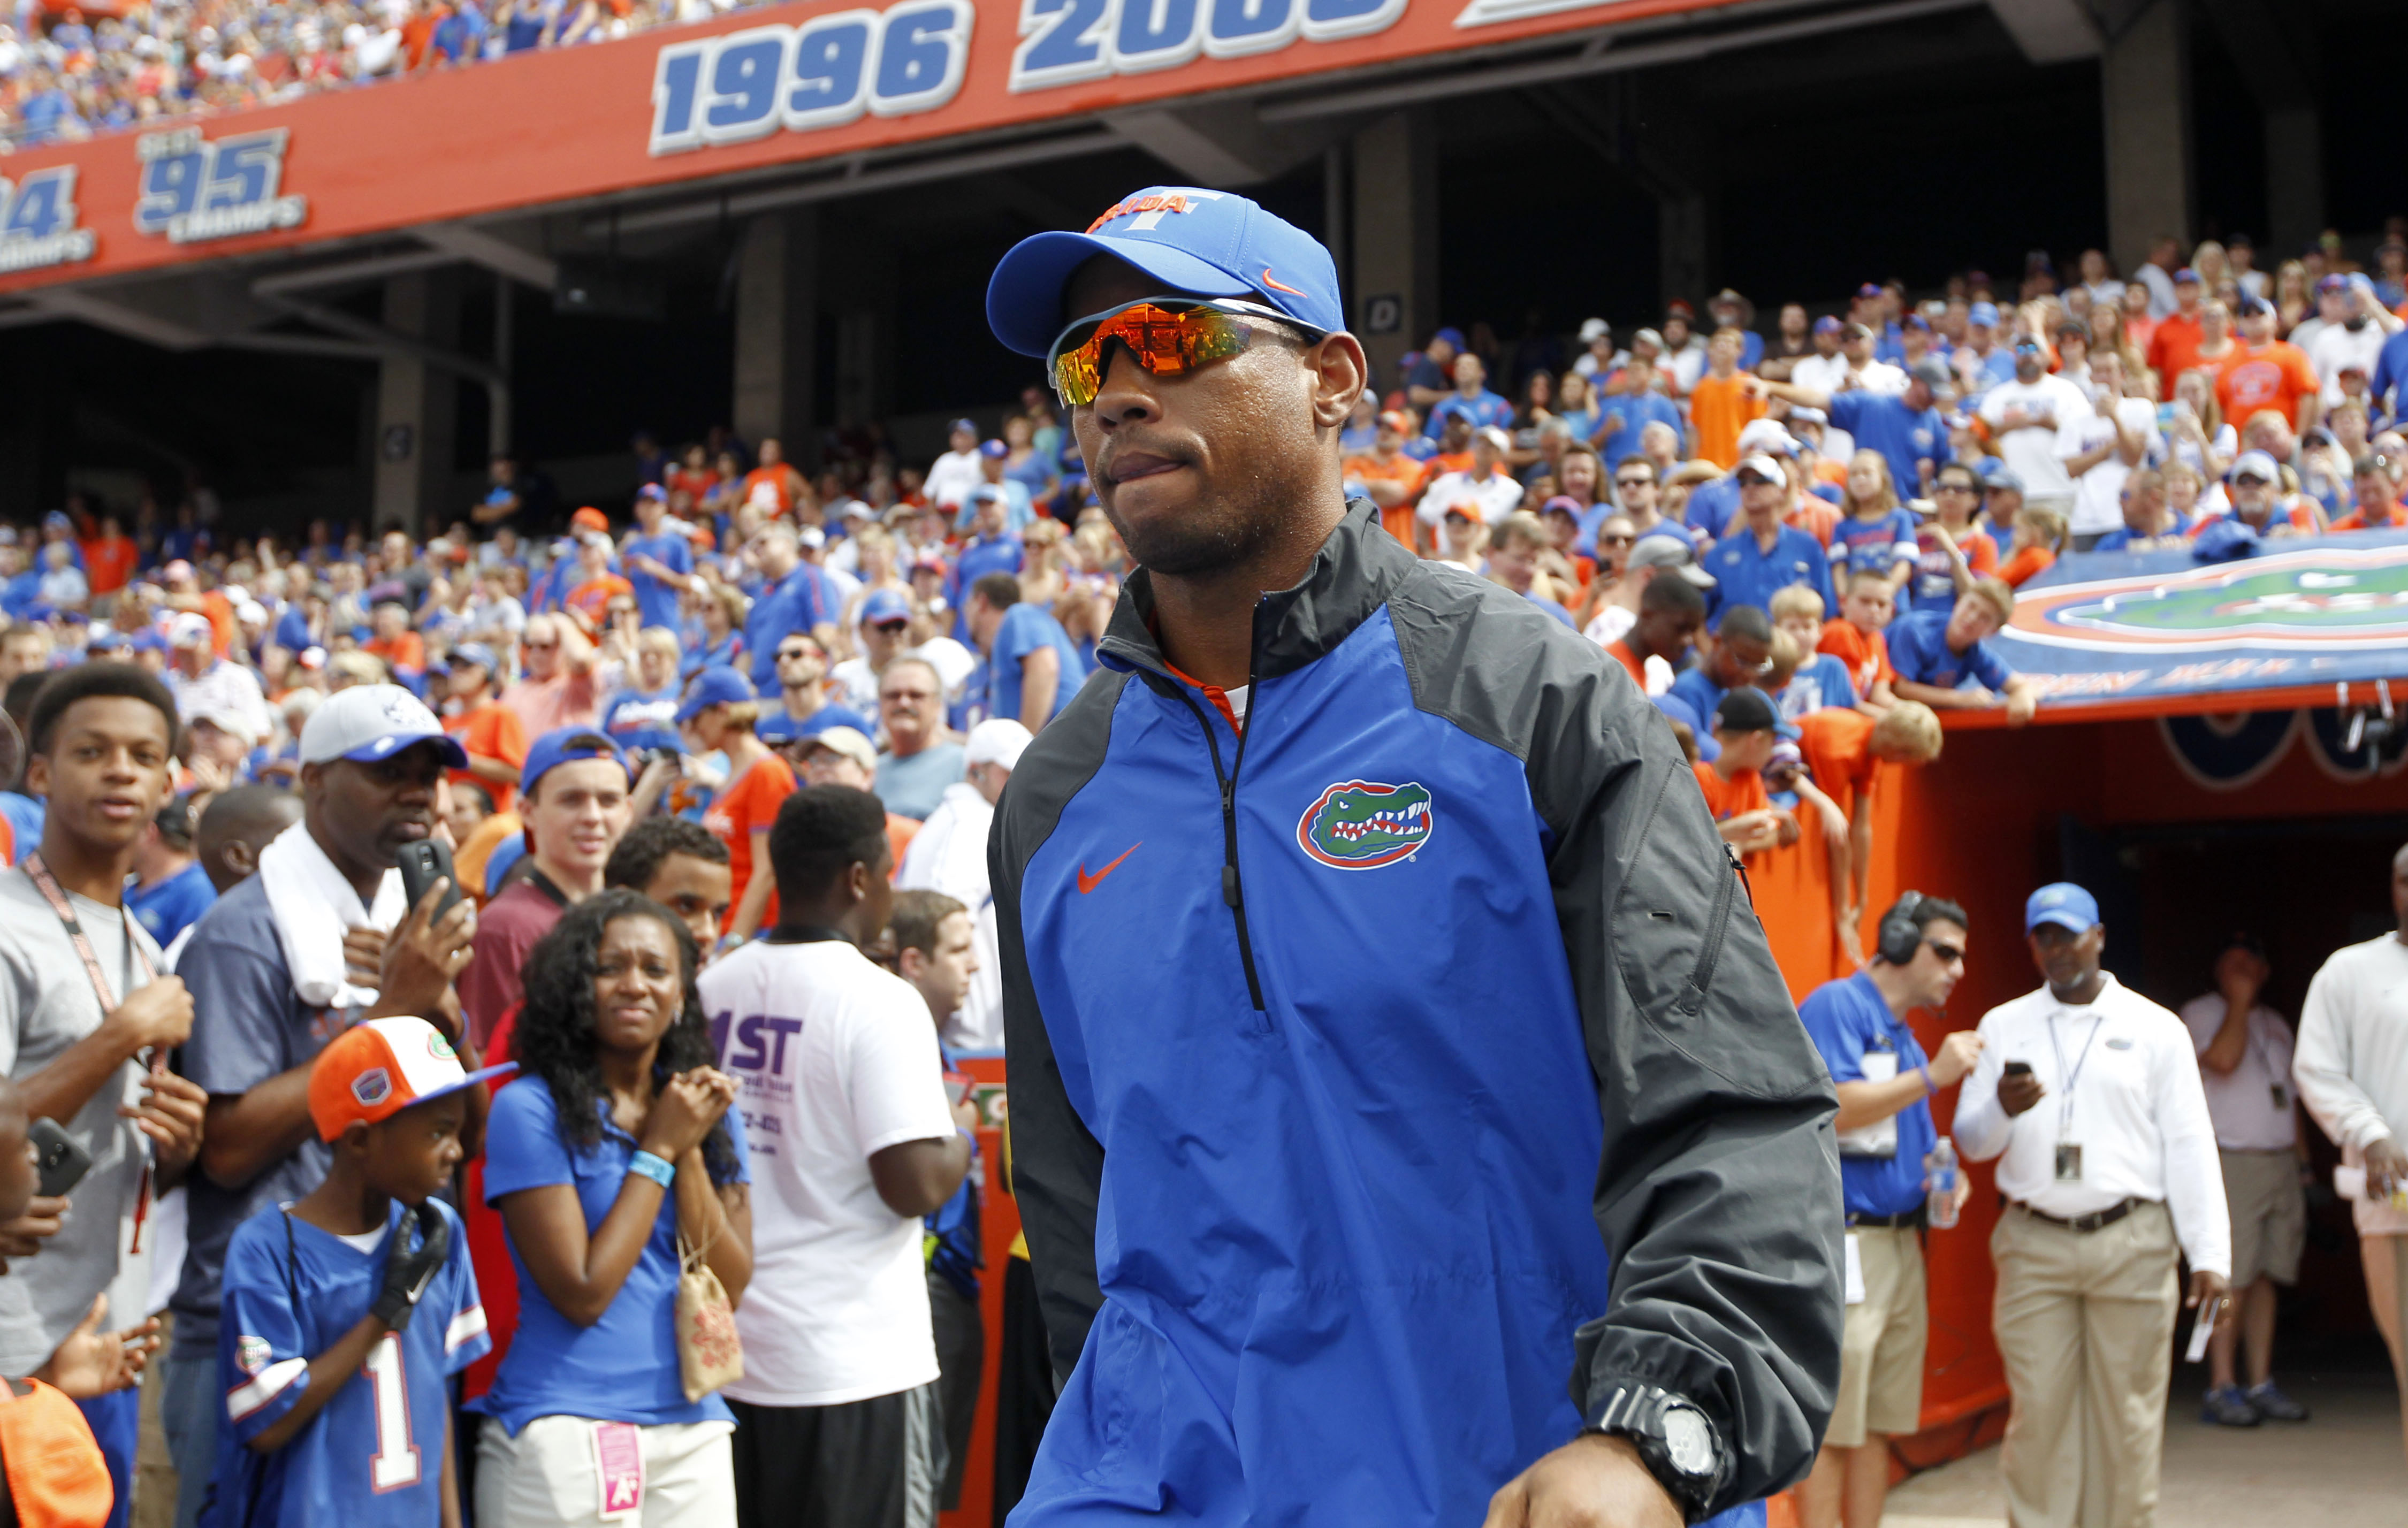 Former Florida Gators quarterback and wide receivers coach Chris Leak is now the head coach at Orlando's Edgewater High. (Kim Klement/USA TODAY Sports)